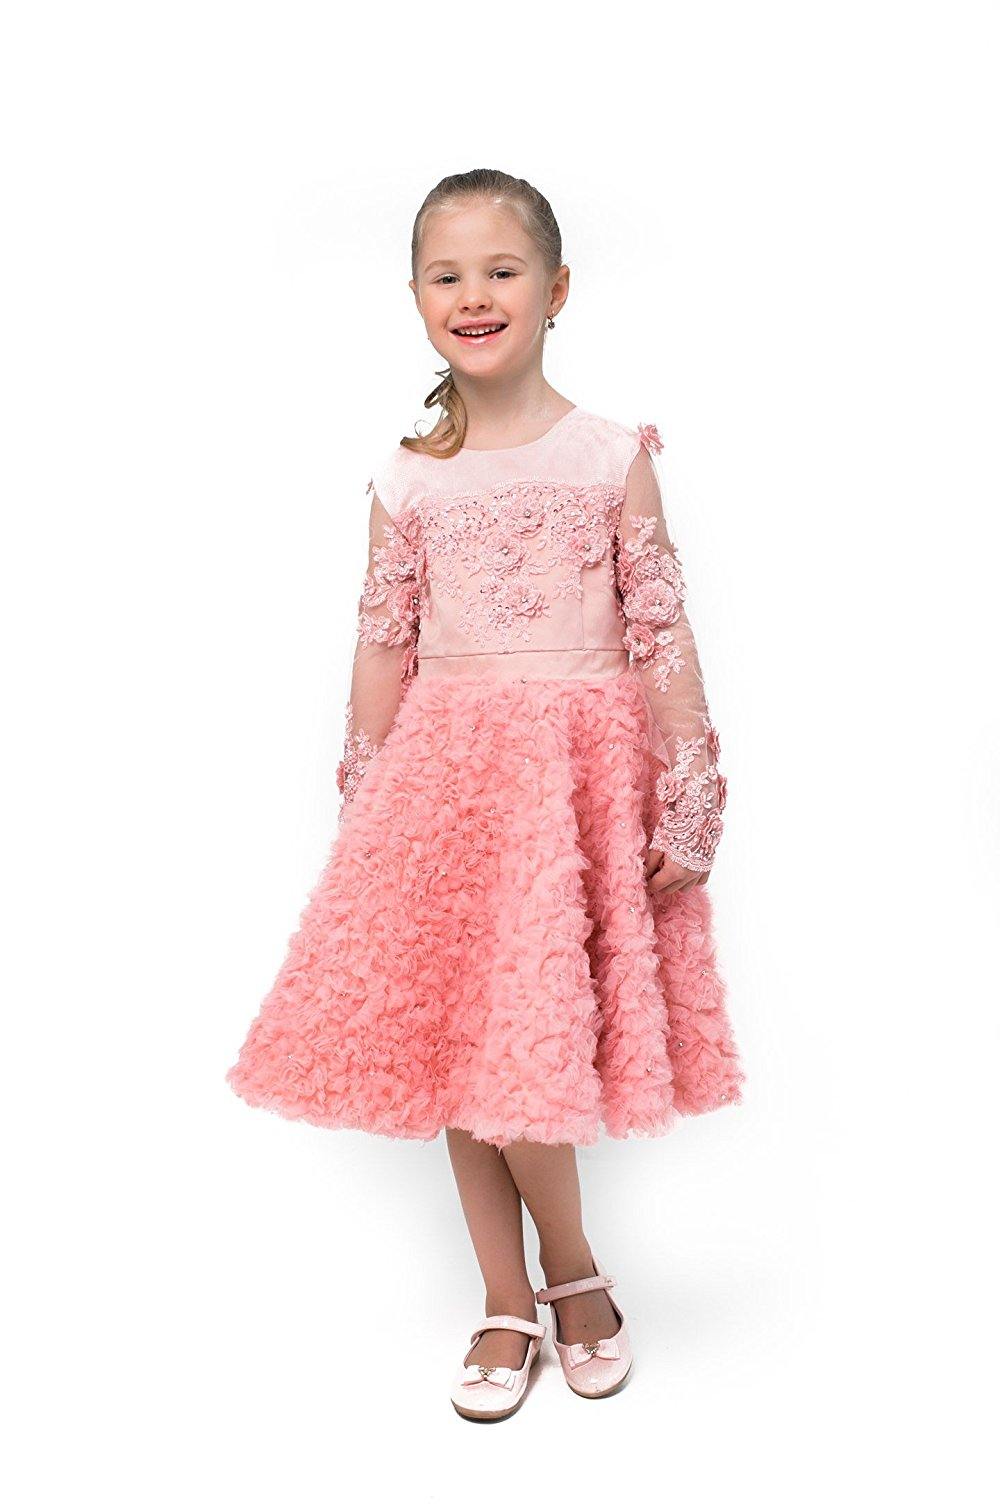 fa1ec0ca0ce5 Get Quotations · Beautiful Royal Lace Pink Flower Girl Dress - Birthday  Wedding Party Holiday Bridesmaid Flower Girl Pageant